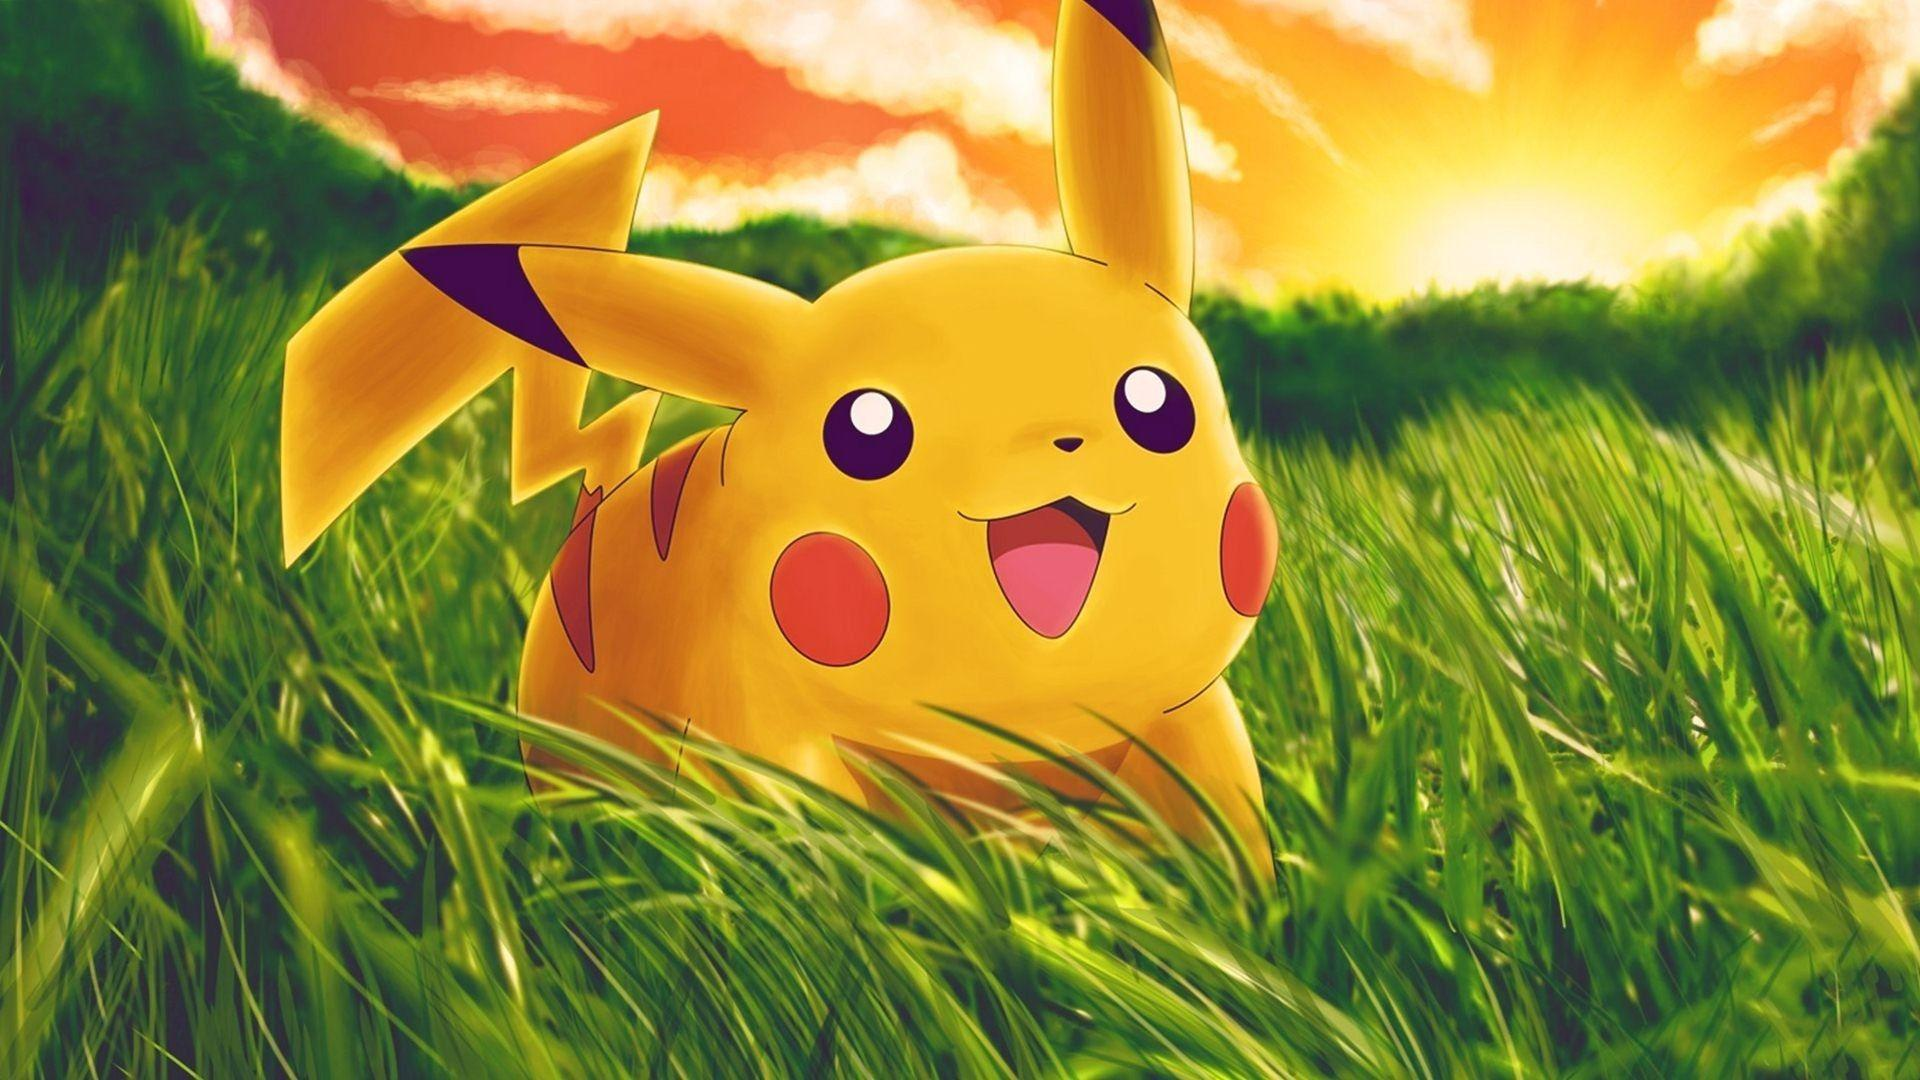 Download Pokemon Pikachu Wallpaper Hd Images Widescreen Background ...